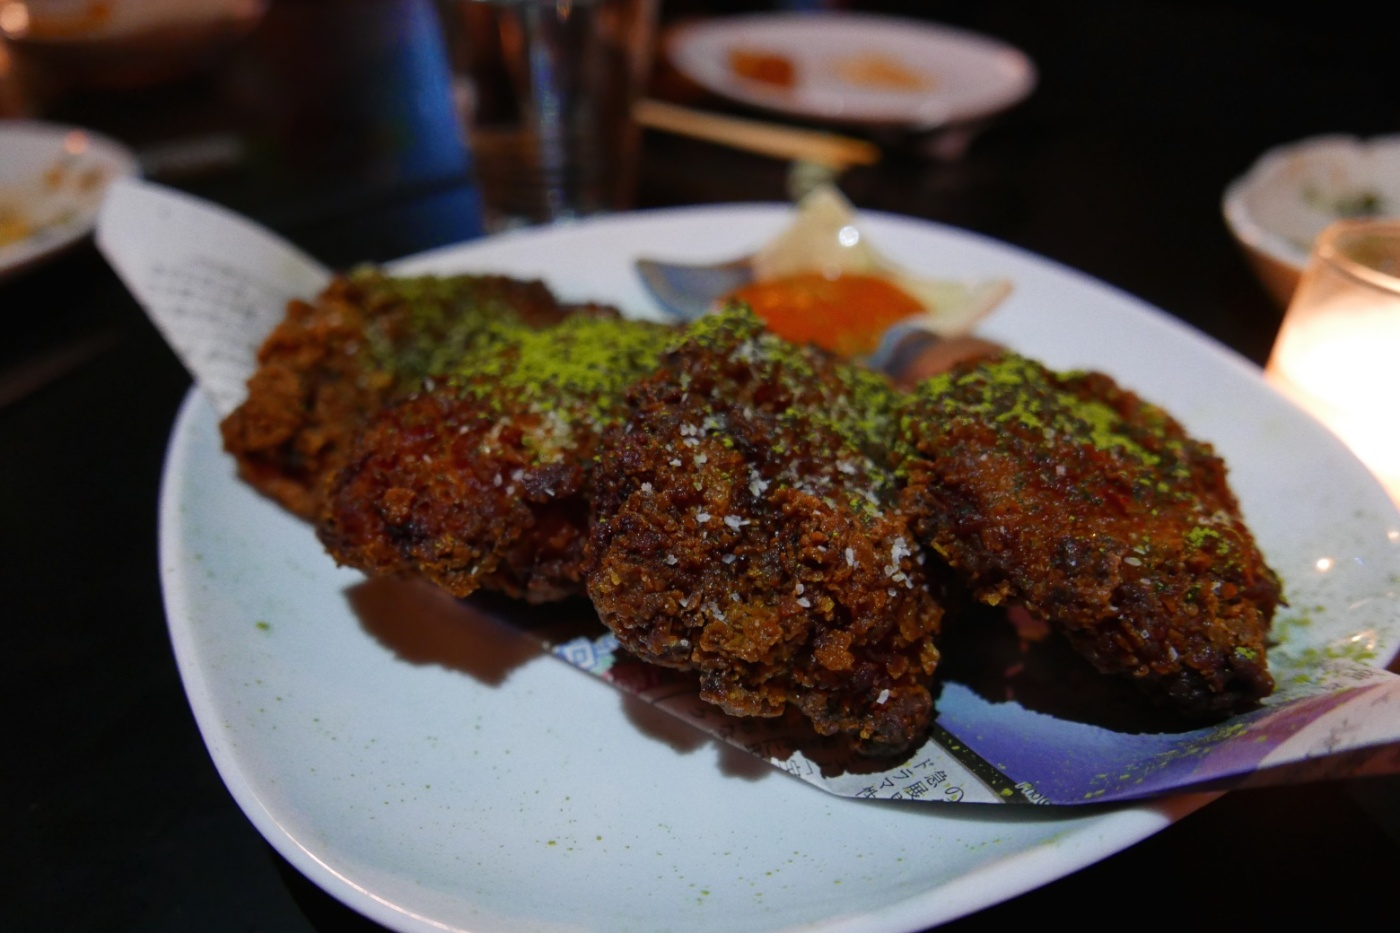 2X Fried Chicken, spicy dipping sauce, green tea, lime